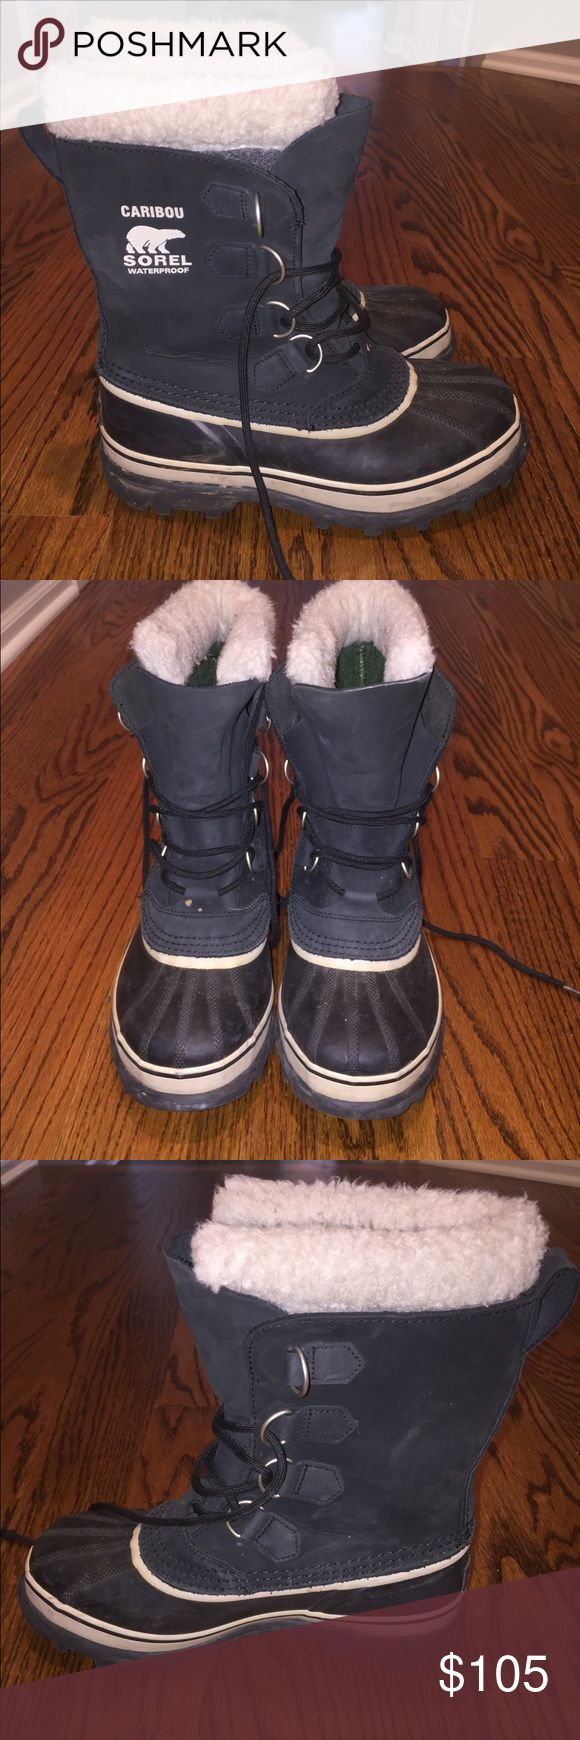 Sorel winter boots These boots are sooo warm and so cozy!! Perfect winter shoe and barely ever worn! GREAT DEAL Sorel Shoes Winter & Rain Boots